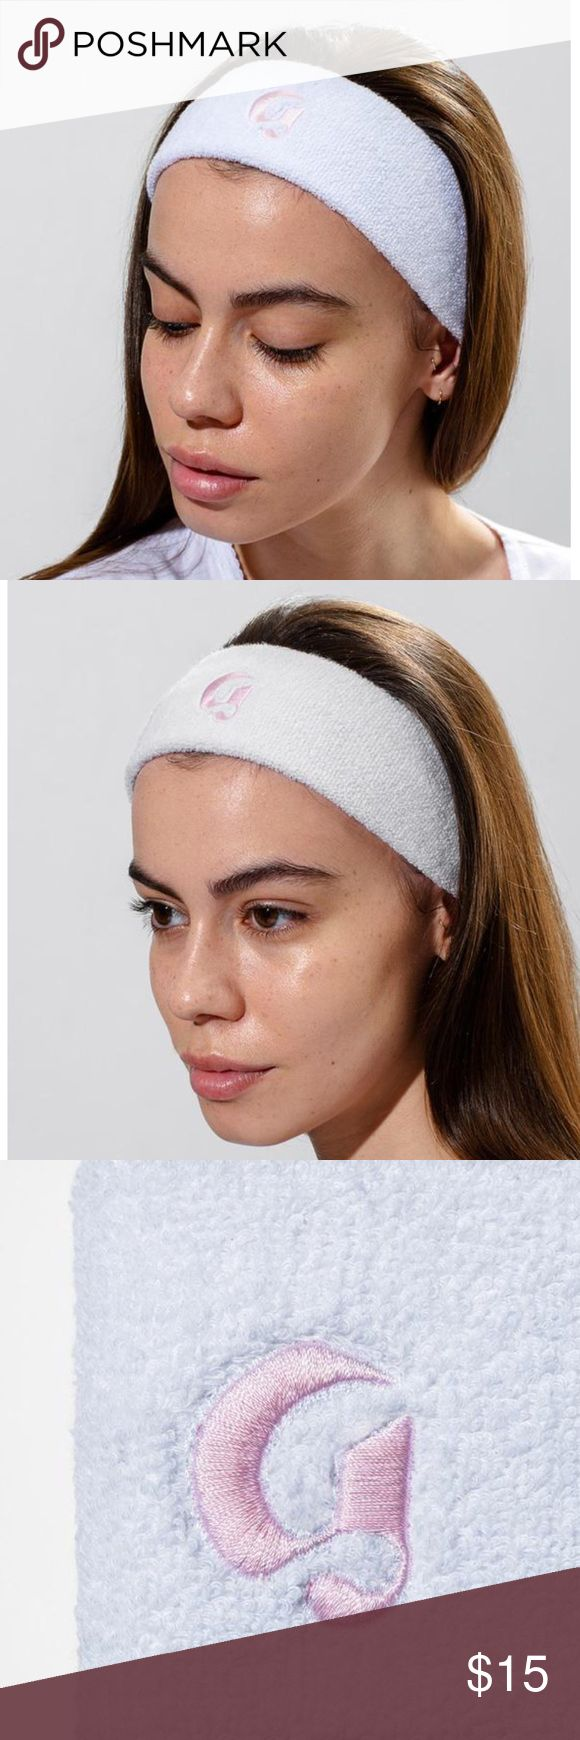 """✨NEW✨GLOSSIER Headband ✨NEW AND NEVER WORN✨with 80% spa-quality looped terry cotton plus 20% of the most sensual stretch elastic nylon so it fits snug but comfy. Precision-stitched with our signature Glossier """"G"""" in official Glossier pink—Pantone 705. Keeps hairs safe from excess moisture, masks, and face wash. Is cute. GLOSSIER Accessories Hair Accessories"""